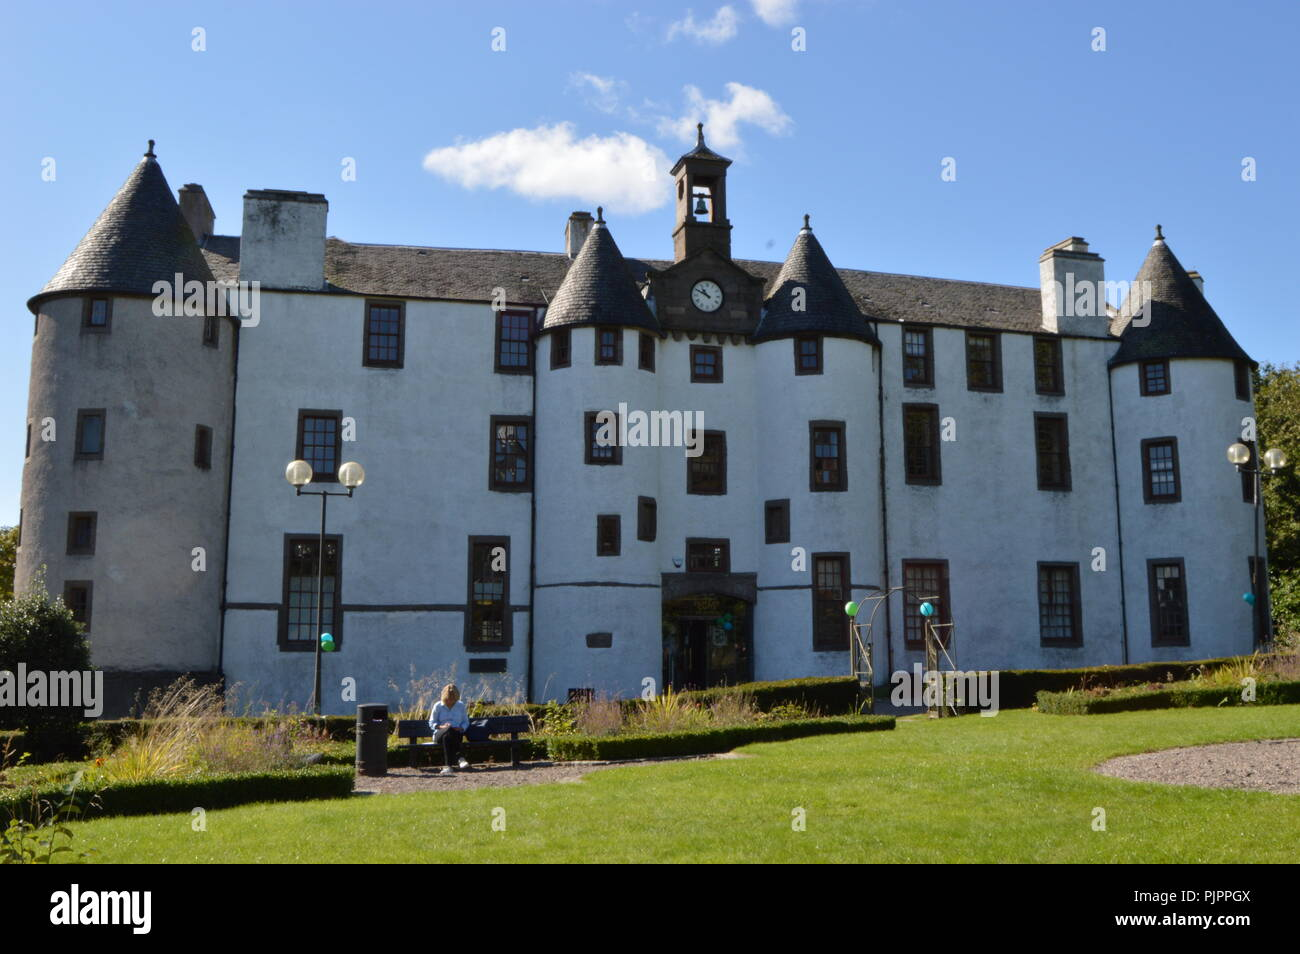 Dudhope Castle, ancient seat of the Scrimgeour Family, Dundee, Scotland, September 2018 - Stock Image